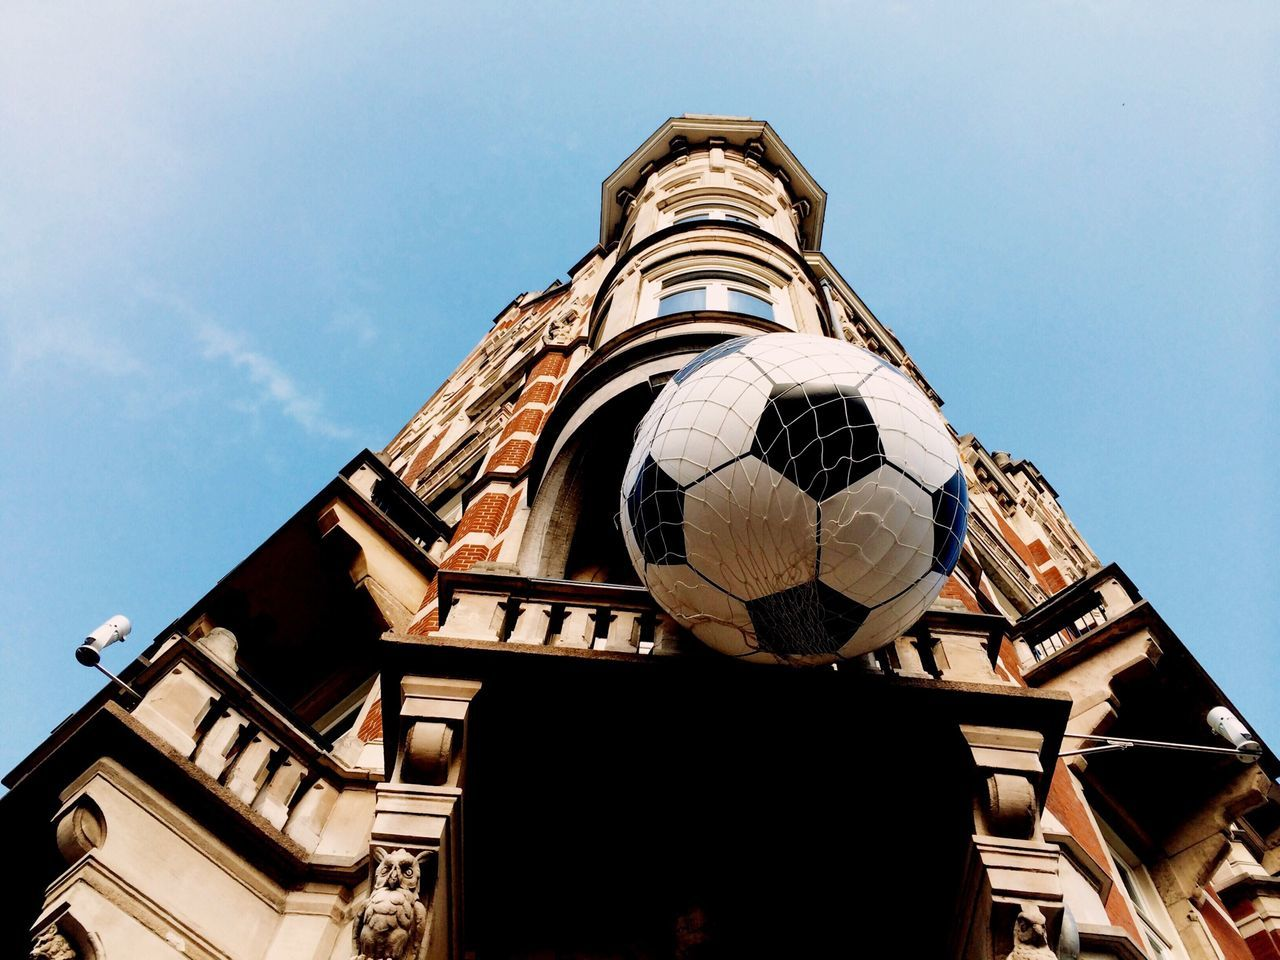 Low angle view of building with large soccer ball hanging in net